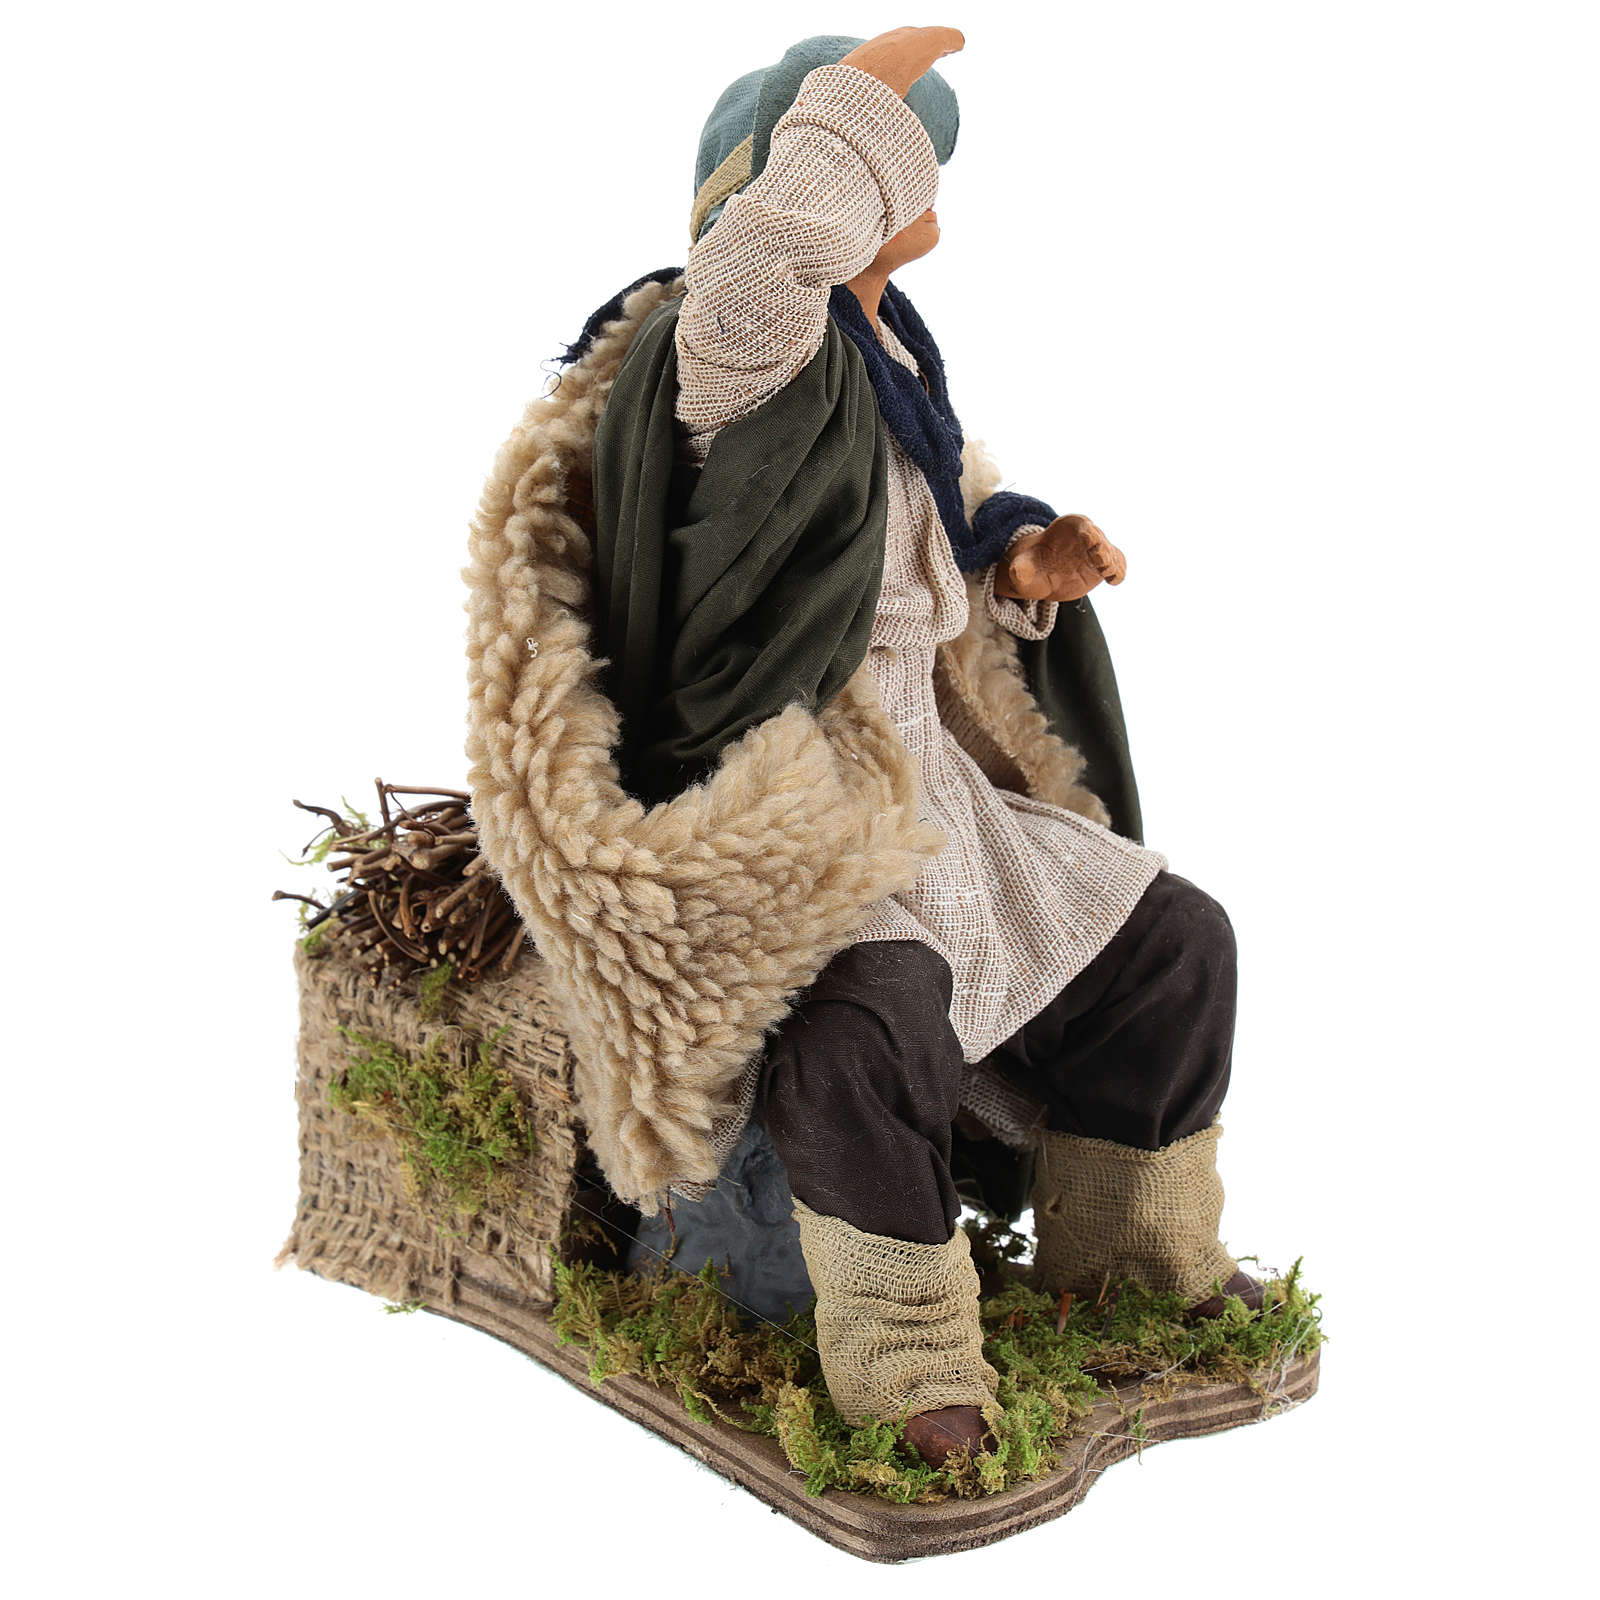 Animated Man looking in the distance figurine for Neapolitan Nativity, 24cm 4